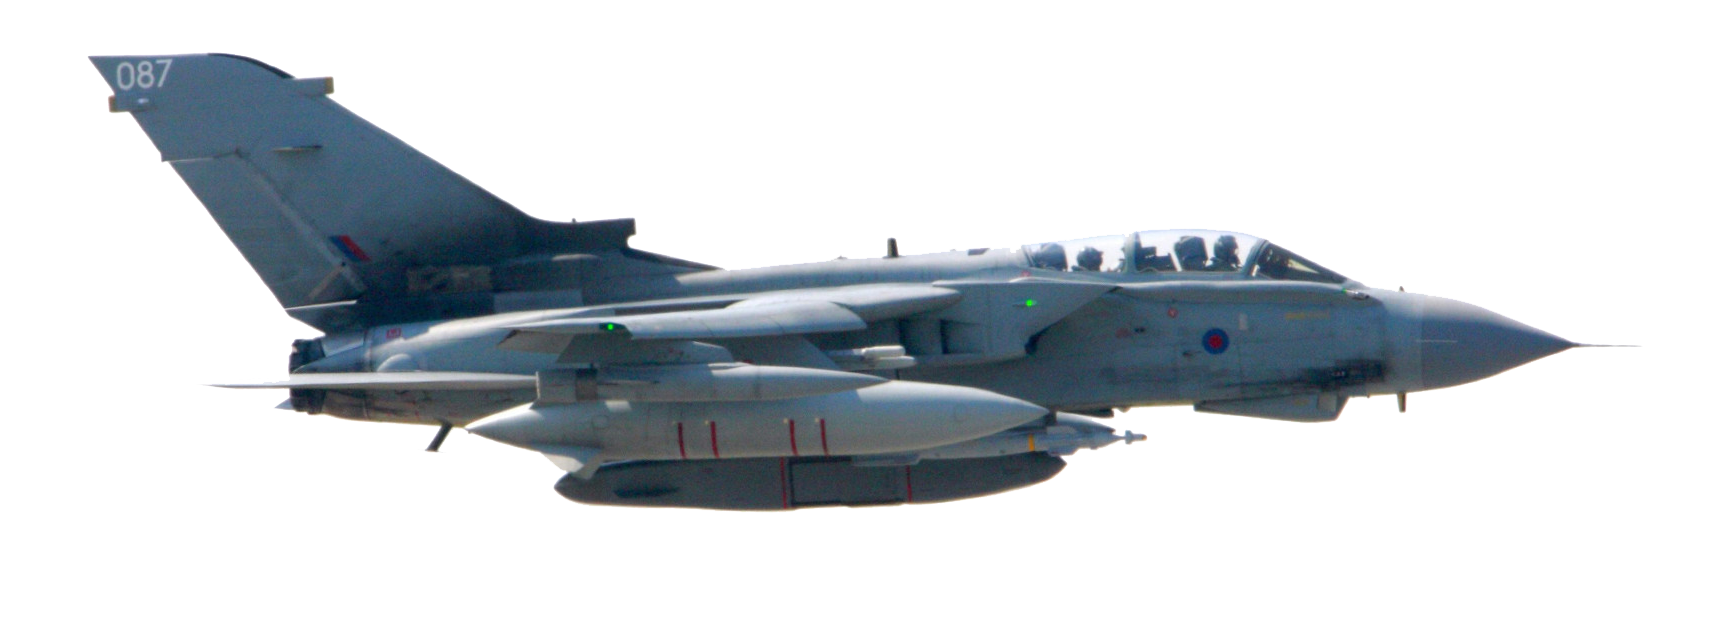 Jet plane png. Fighter aircraft images free